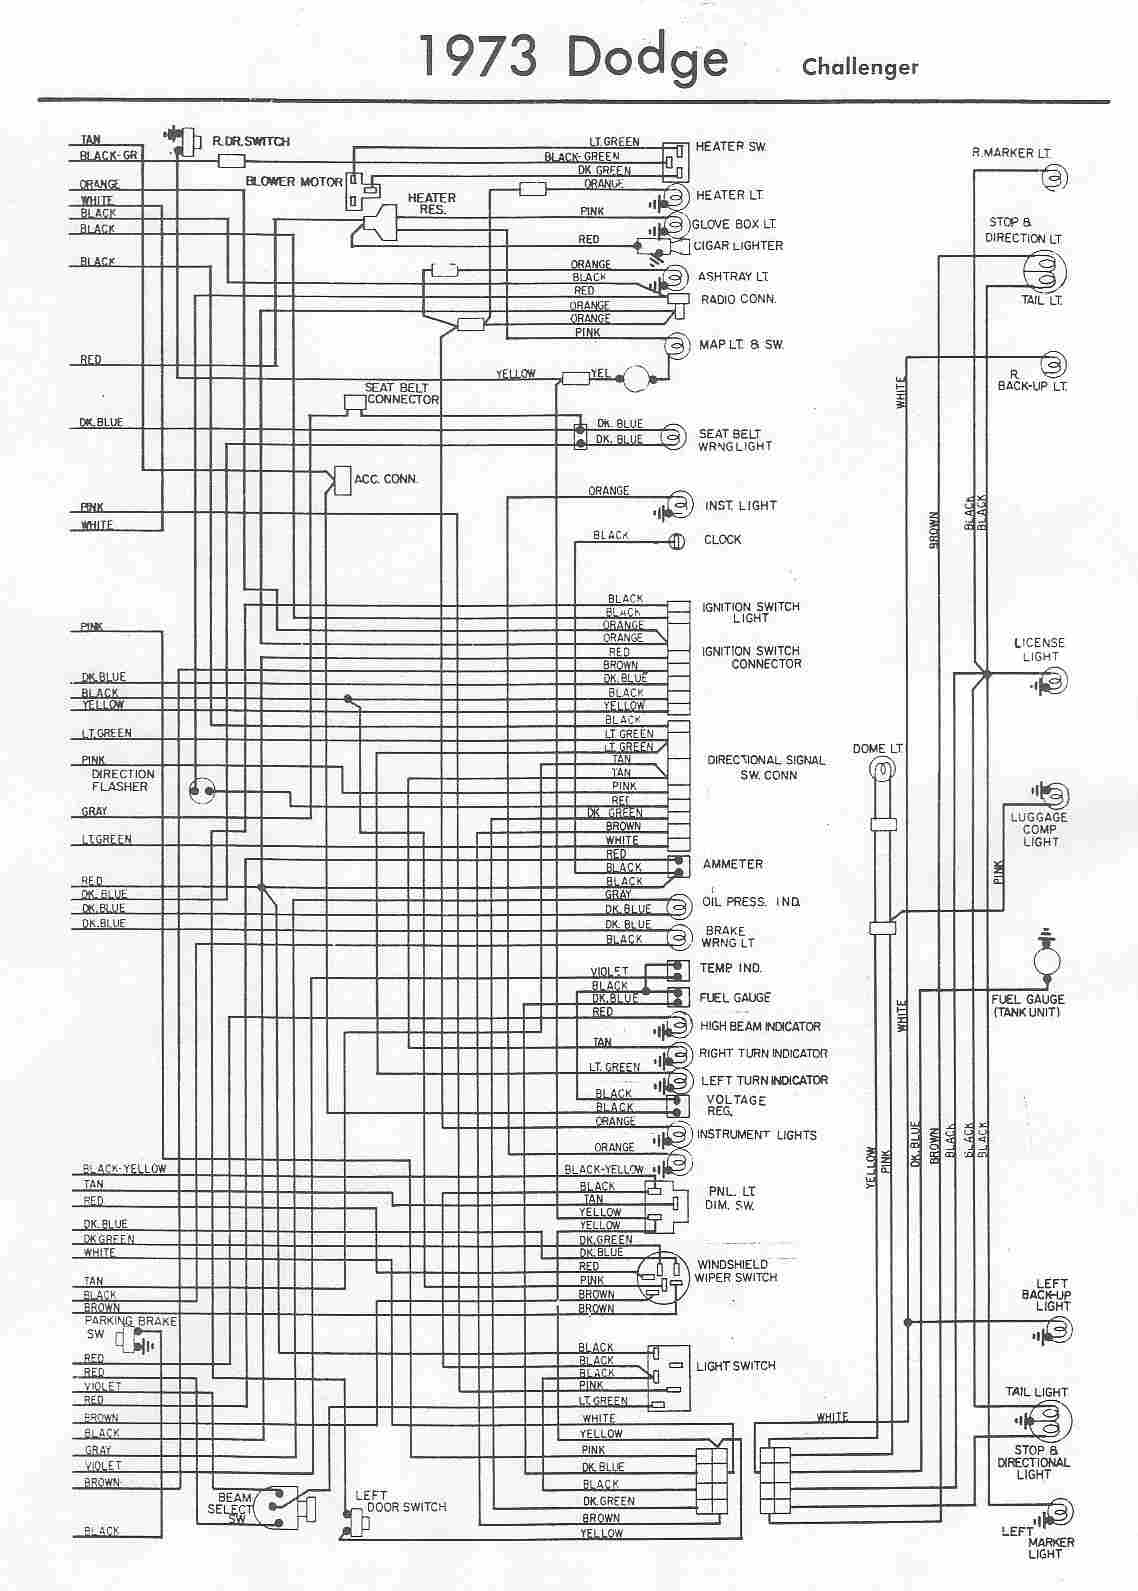 1999 Jeep Grand Cherokee Wiring Diagram Download Dodge Car Manuals Diagrams Pdf Fault Codes